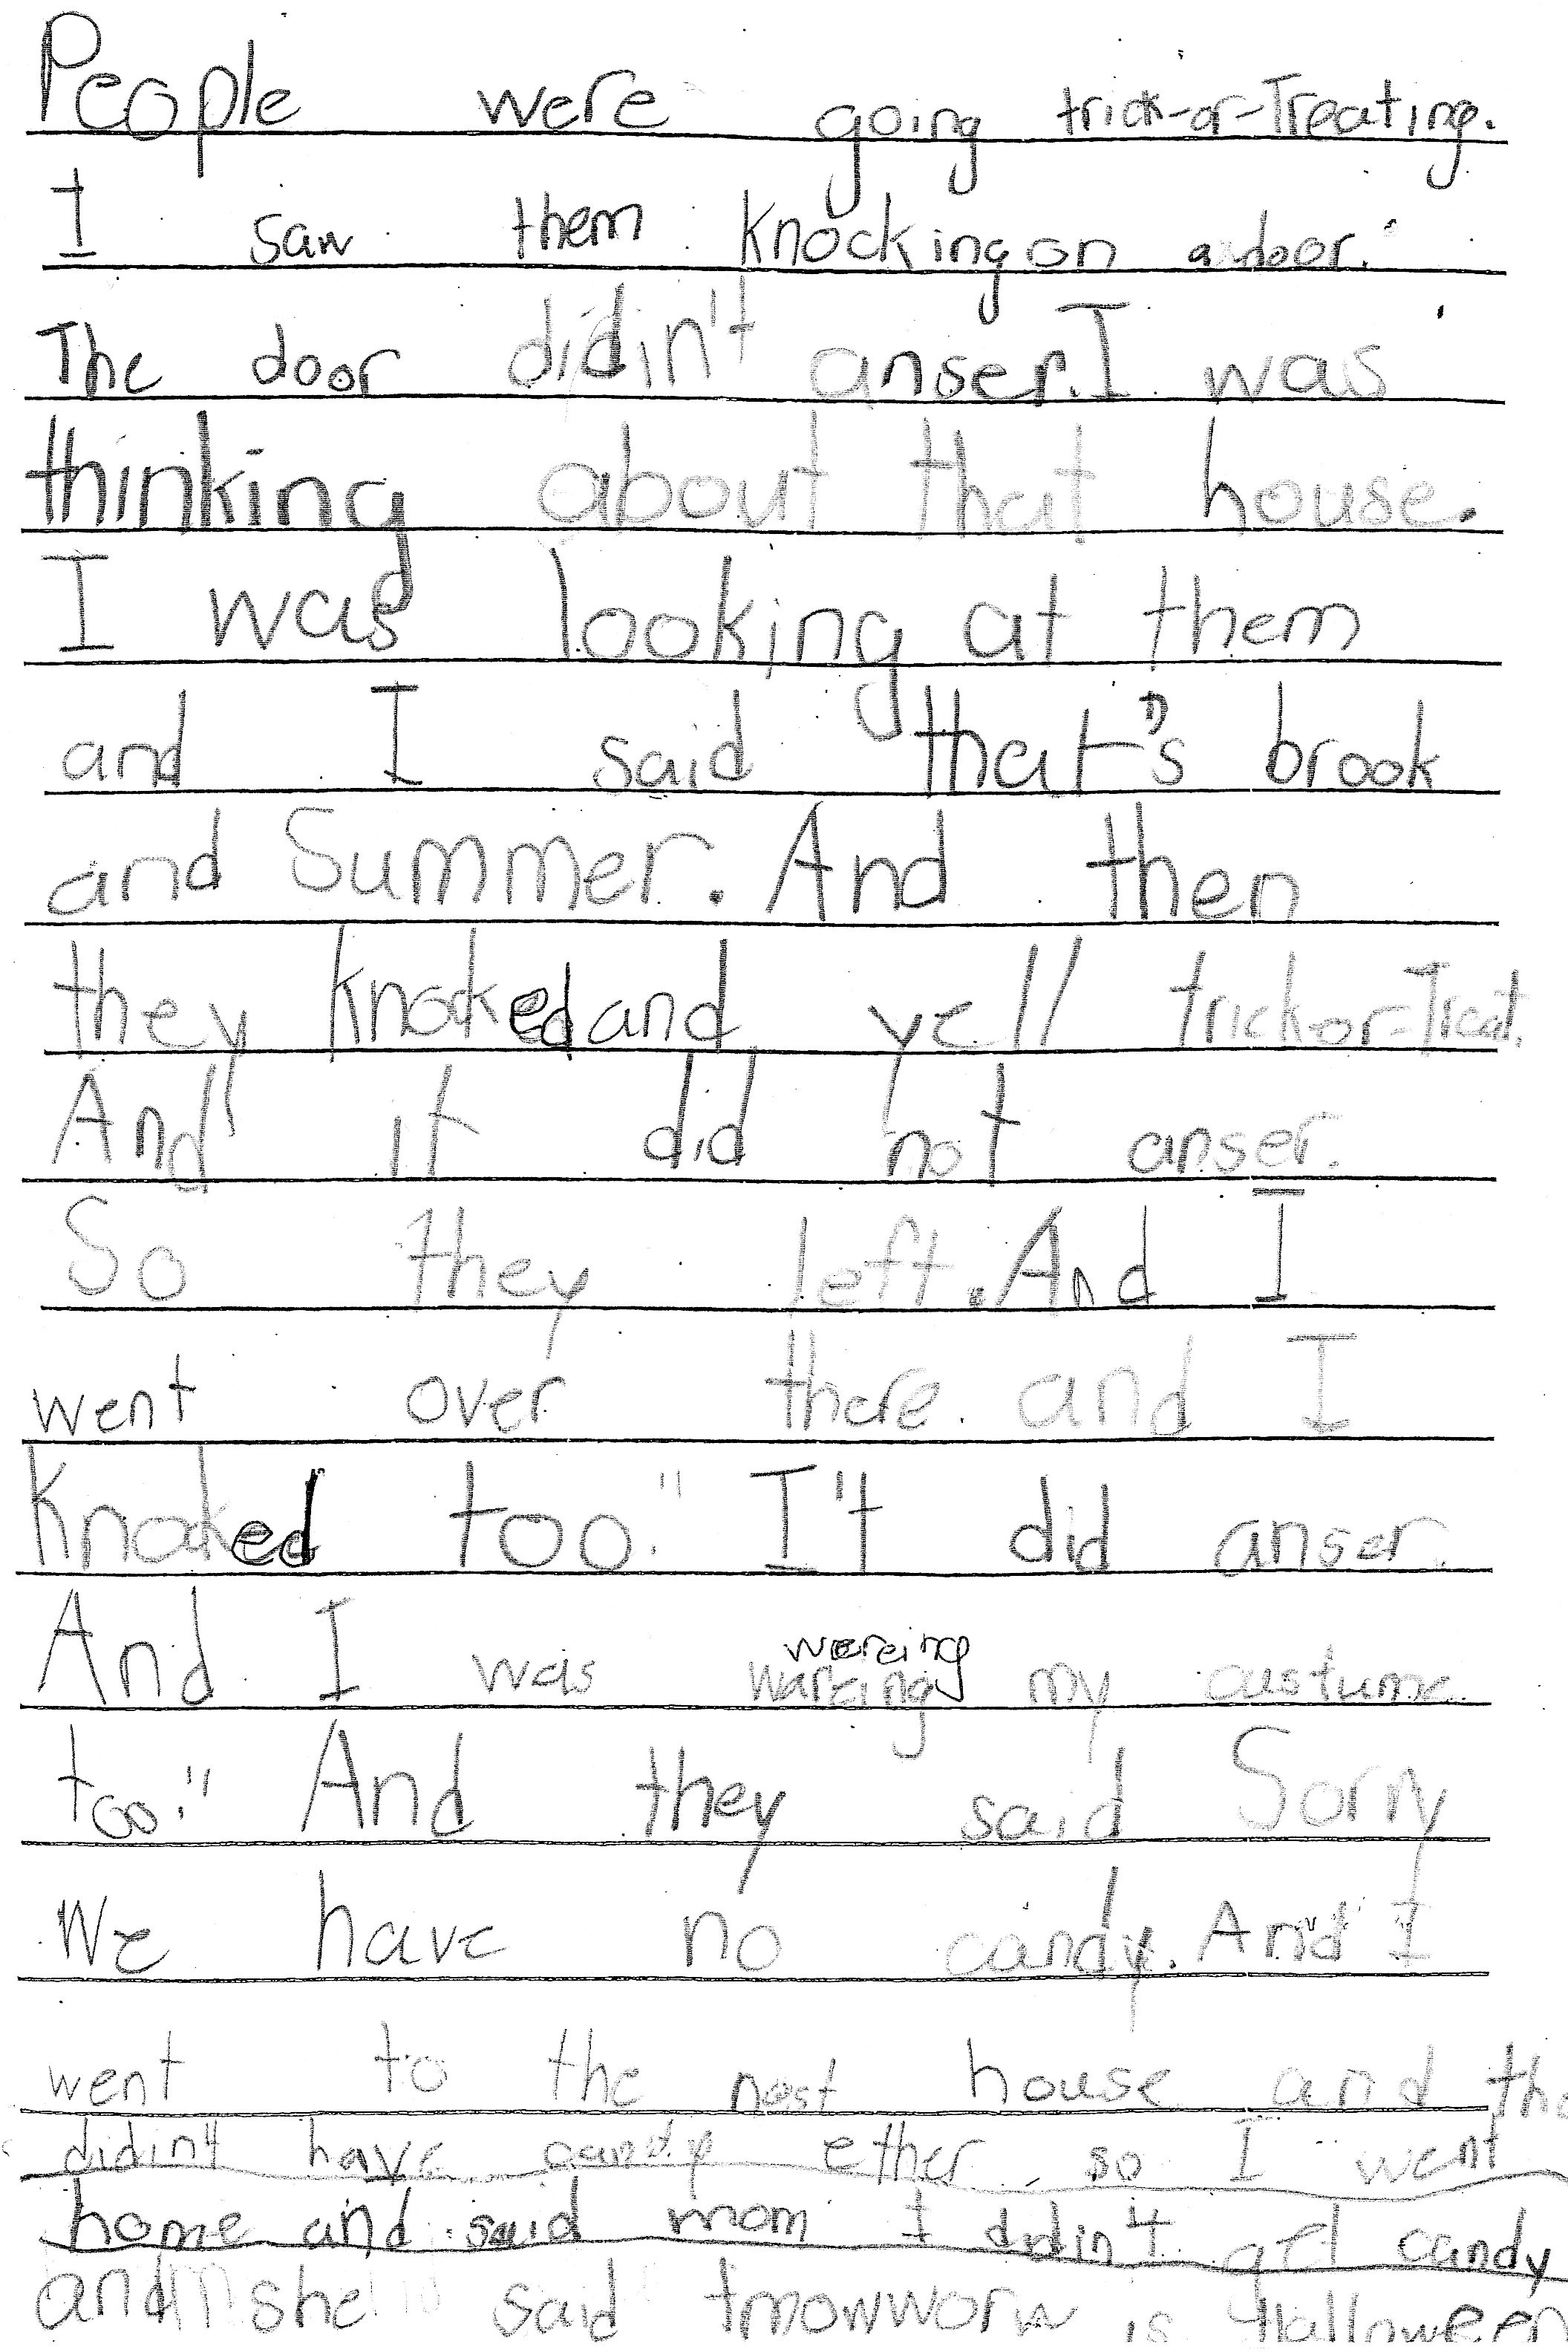 jacqueline reid s e portfolio licensed for non commercial use i was able to successfully implement a graphic organizer to help accommodate for this student s hardships her writing abilities